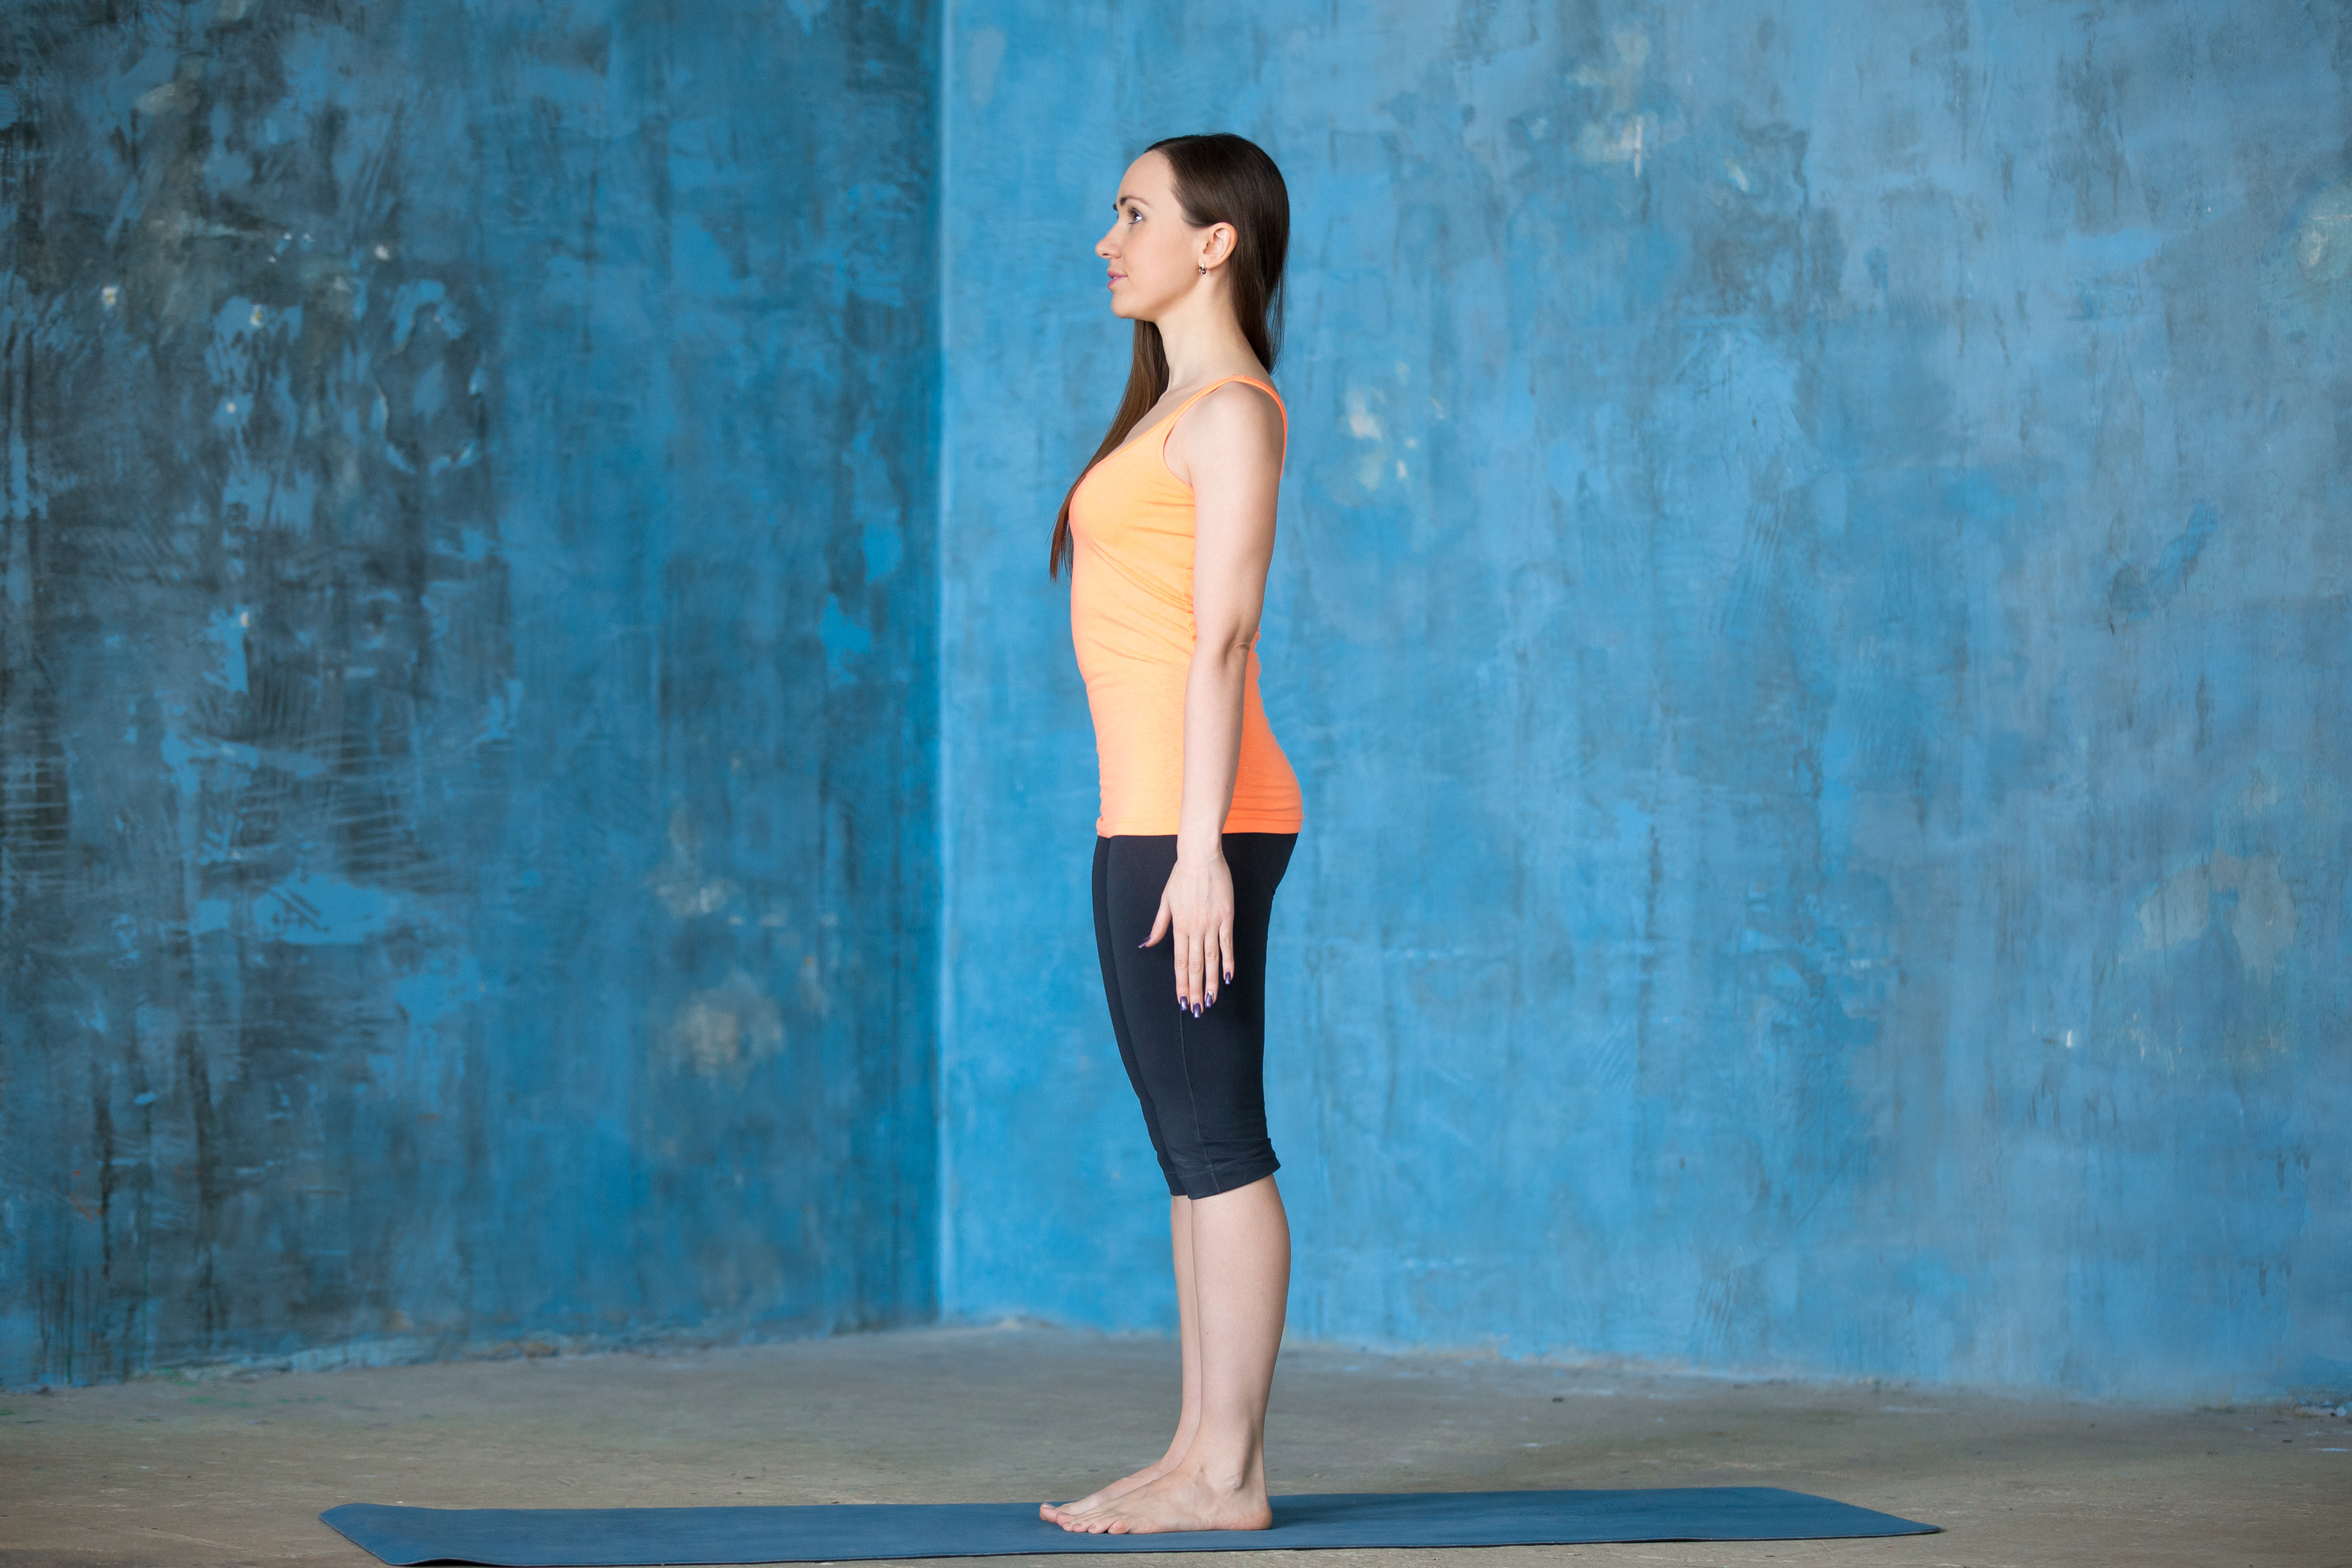 Posture and the relation of the diaphragm to how easy or difficult it is to breathe